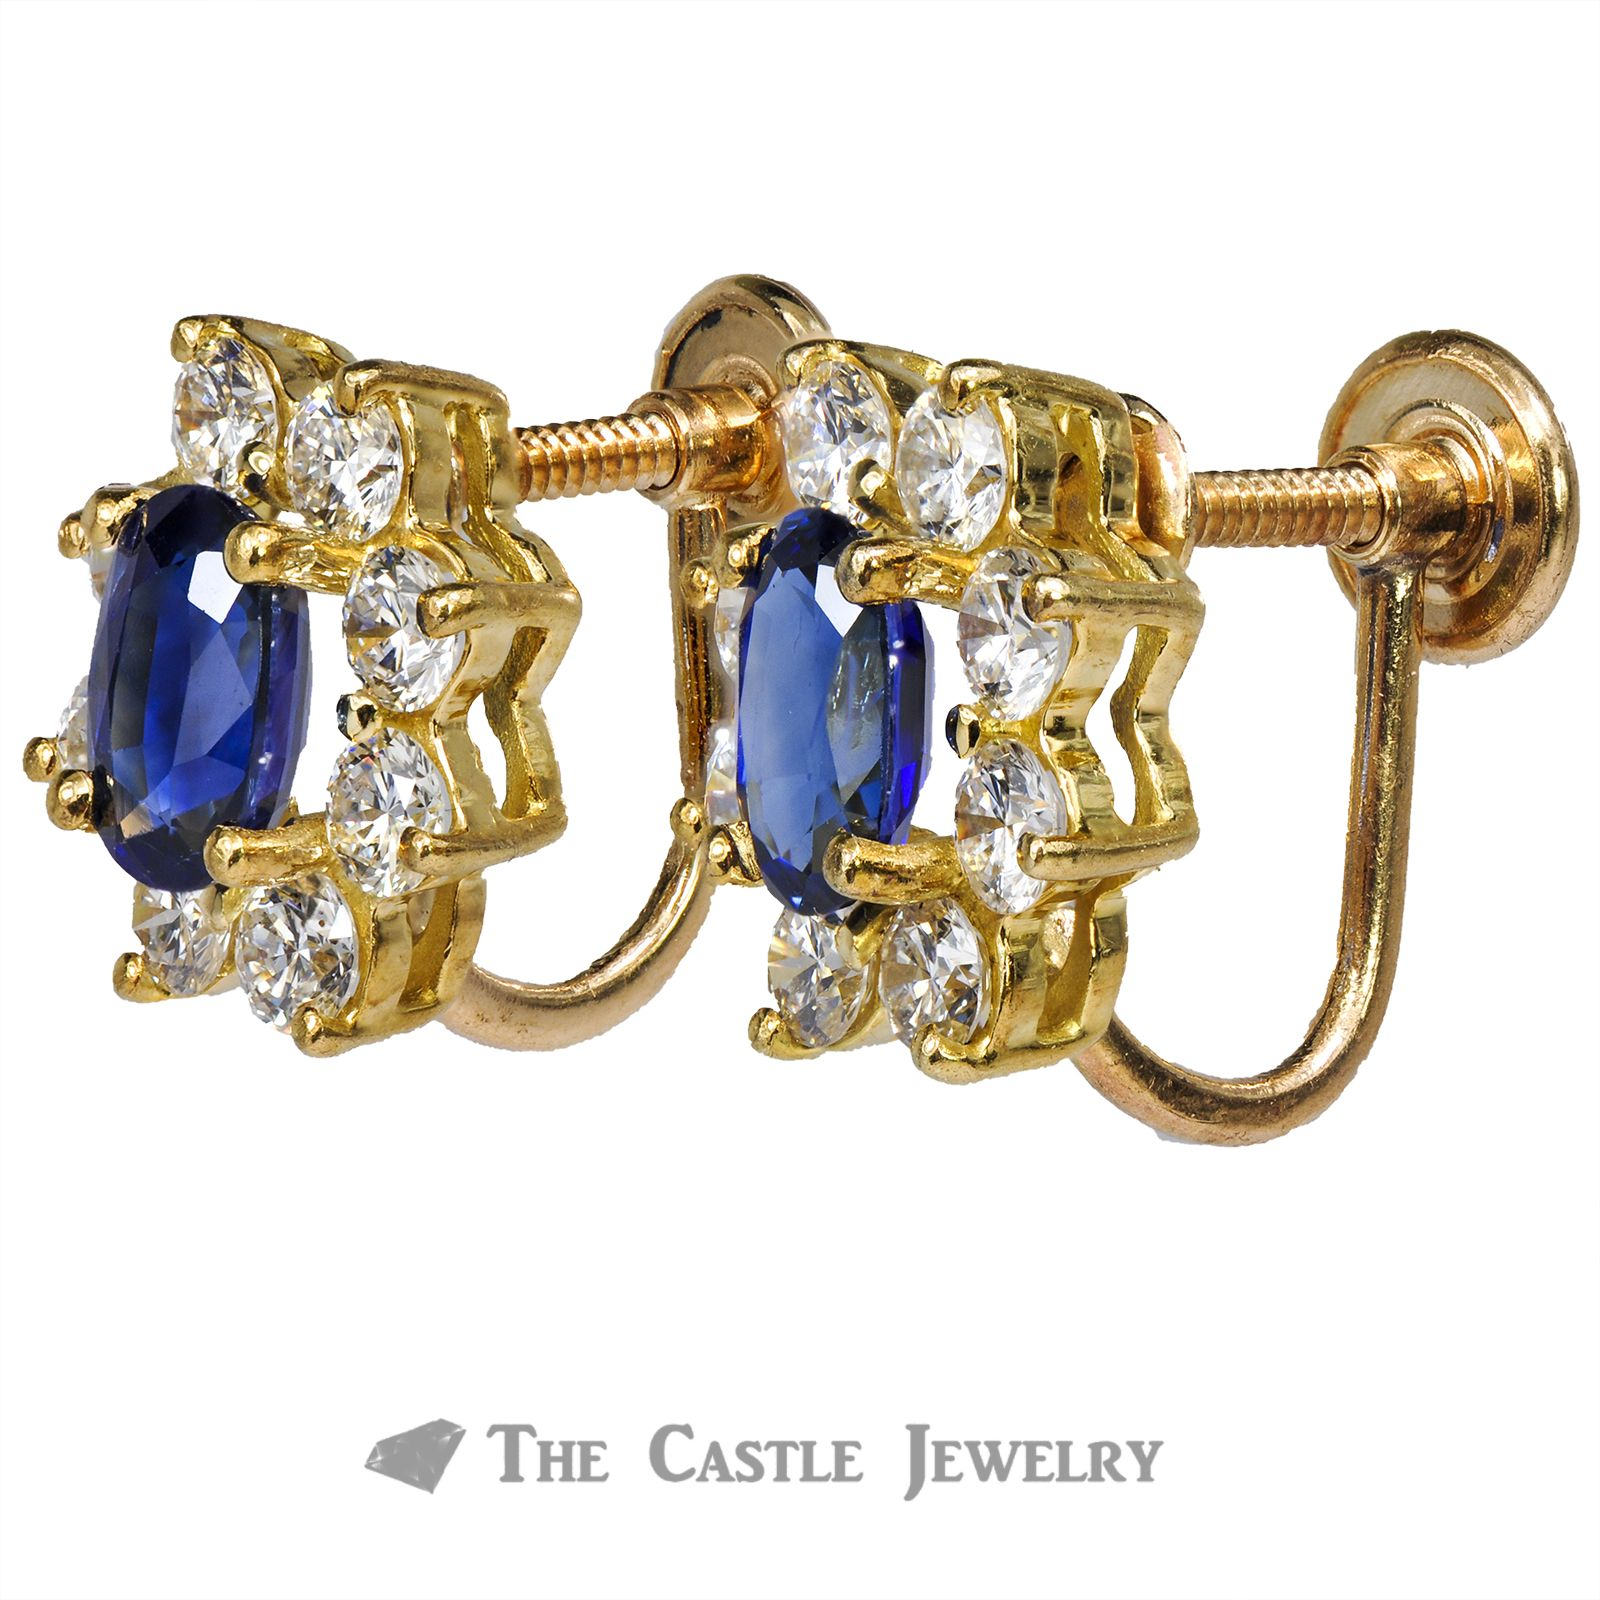 Oval Sapphire Screw On Earrings with Diamond Halo 14K Gold-1